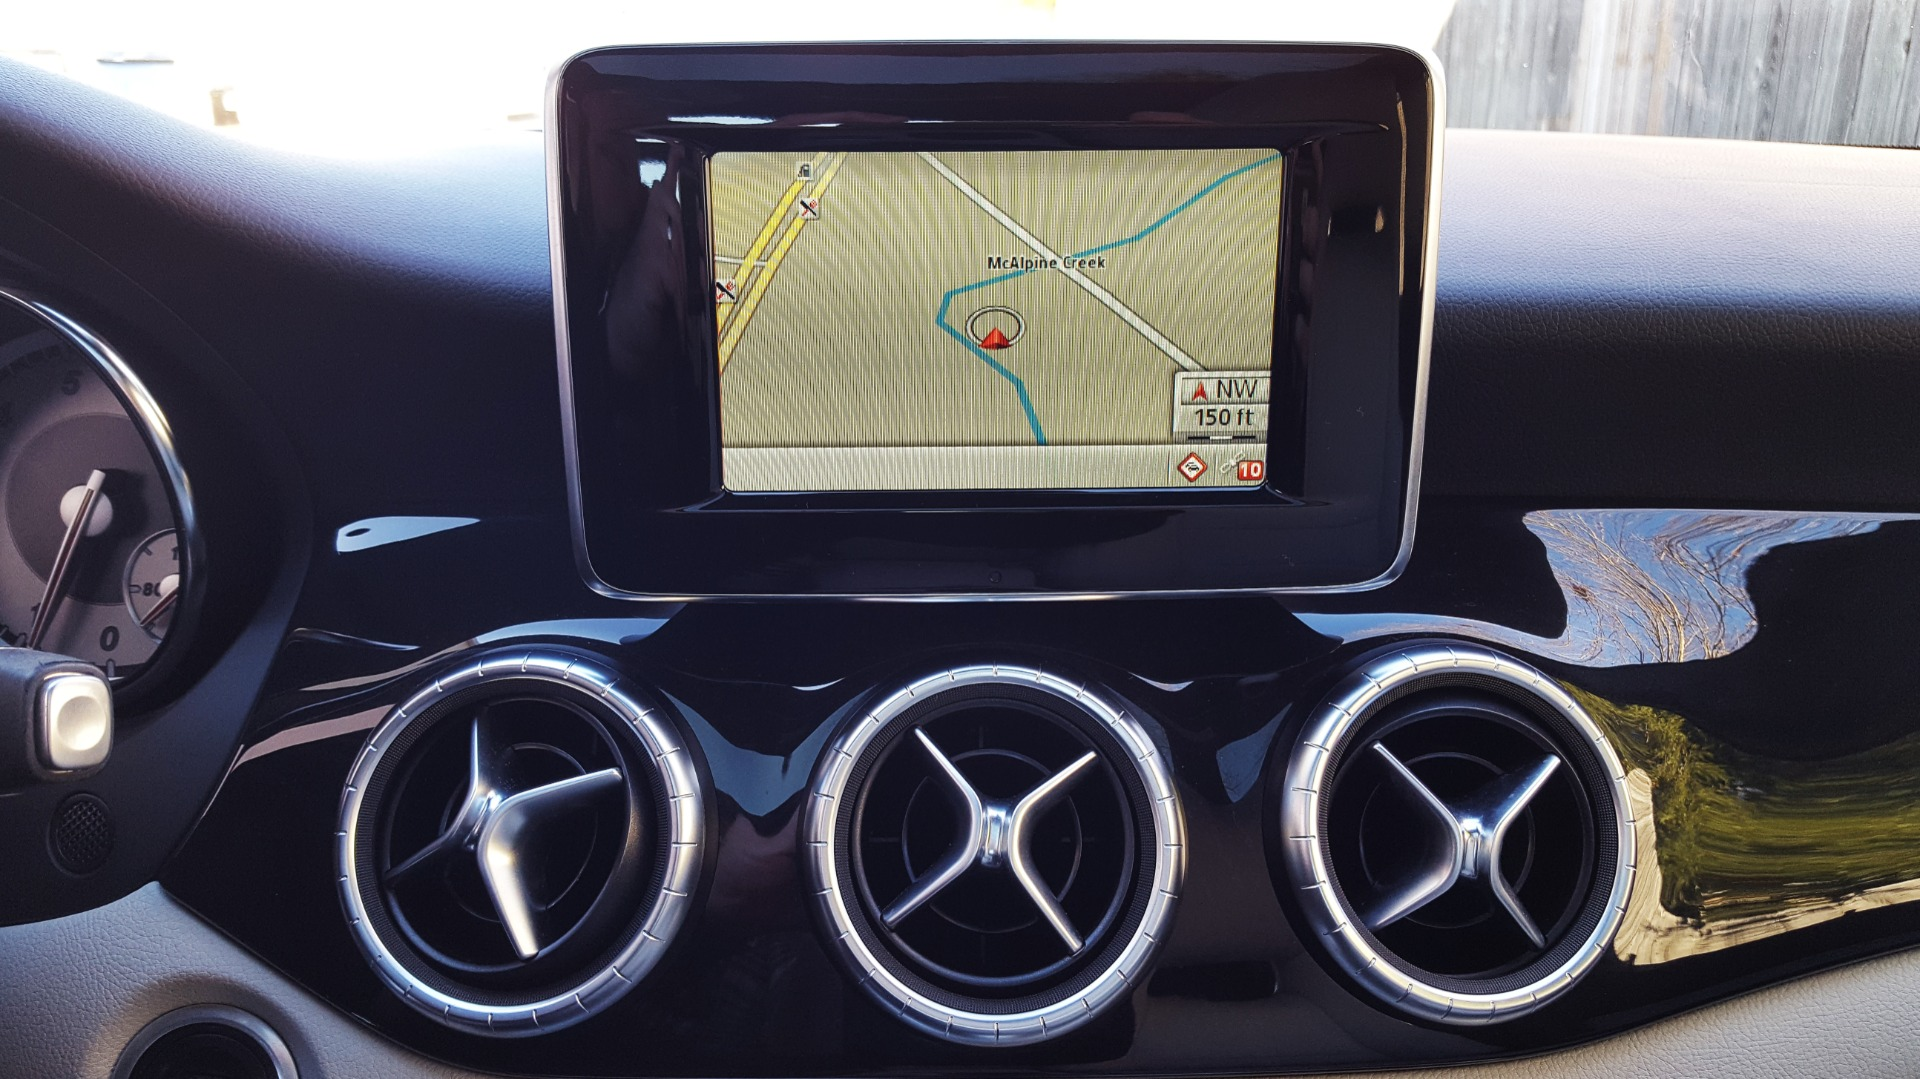 Used 2014 Mercedes-Benz CLA-CLASS CLA 250 / NAV / PANO-ROOF / BLIND SPOT ASSIST / XENON HEADLIGHTS for sale $19,995 at Formula Imports in Charlotte NC 28227 35